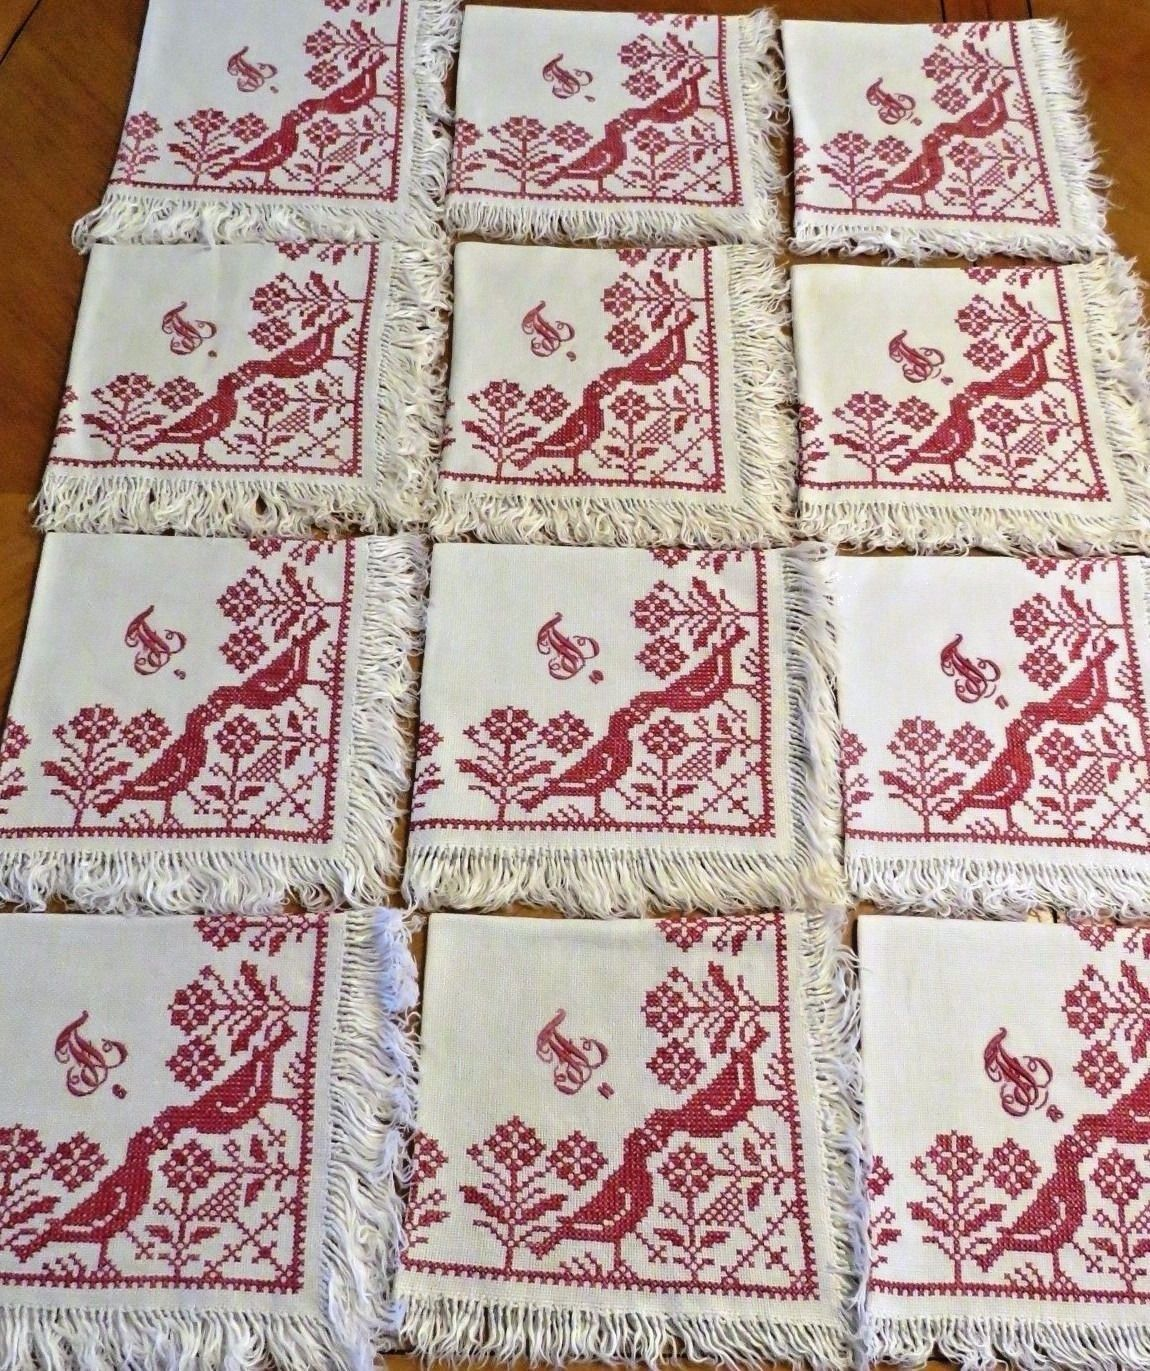 Antique Linen Napkins Embroidered Monogram Numbered Set of 12 Redwork Embroidery (L&T-345)